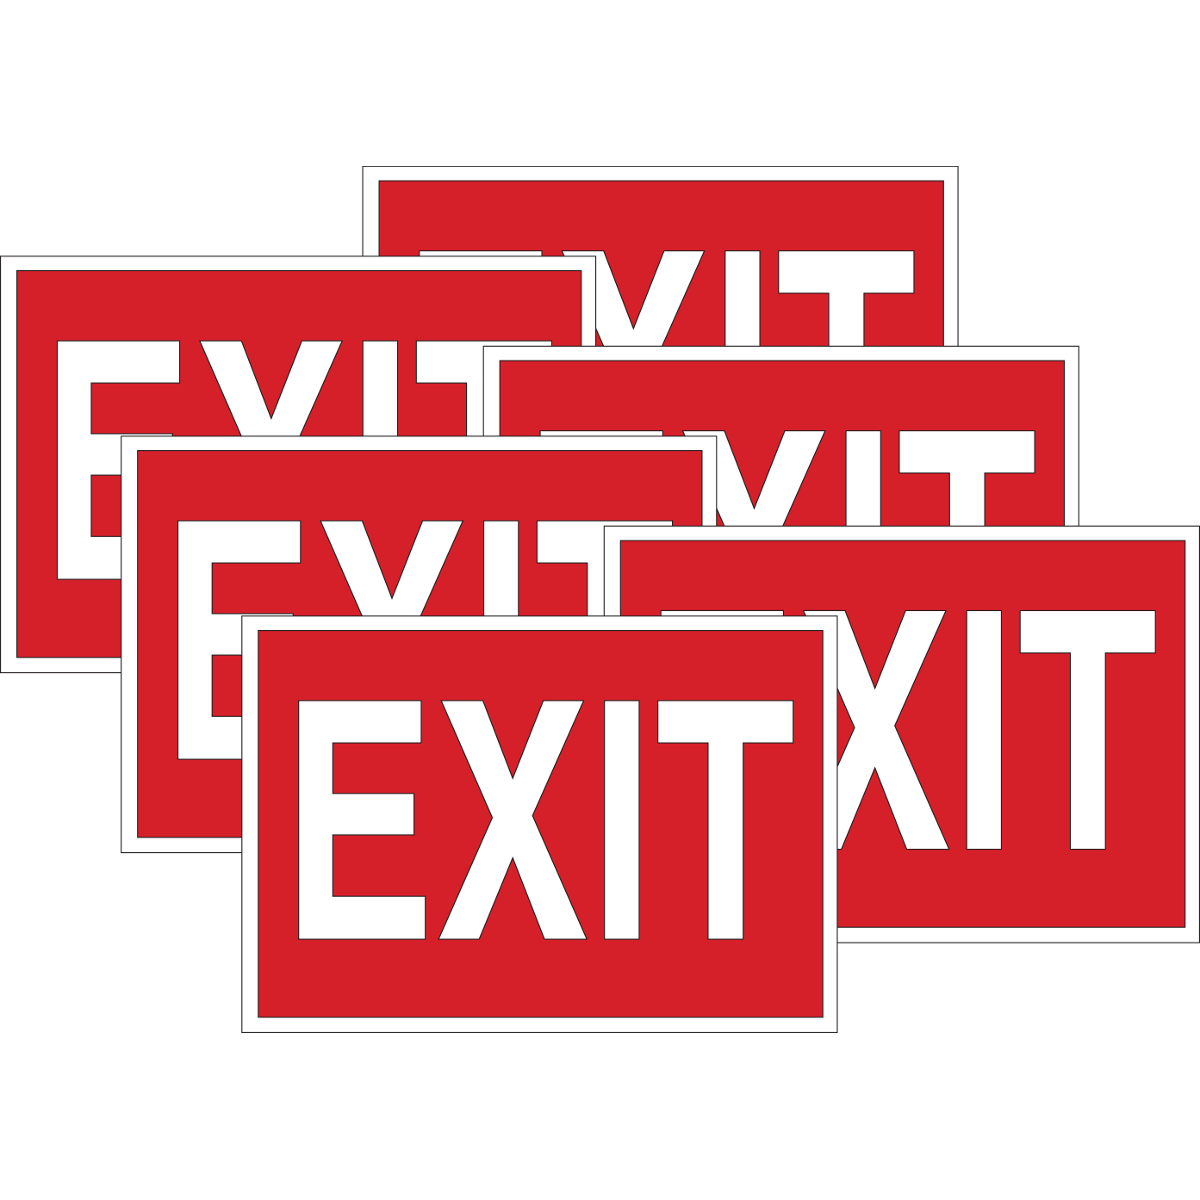 Brady® 51551 Rectangular Exit & Directional Sign, 10 in H x 14 in W, White on Red, B-302 Polyester, Self-Adhesive Mount